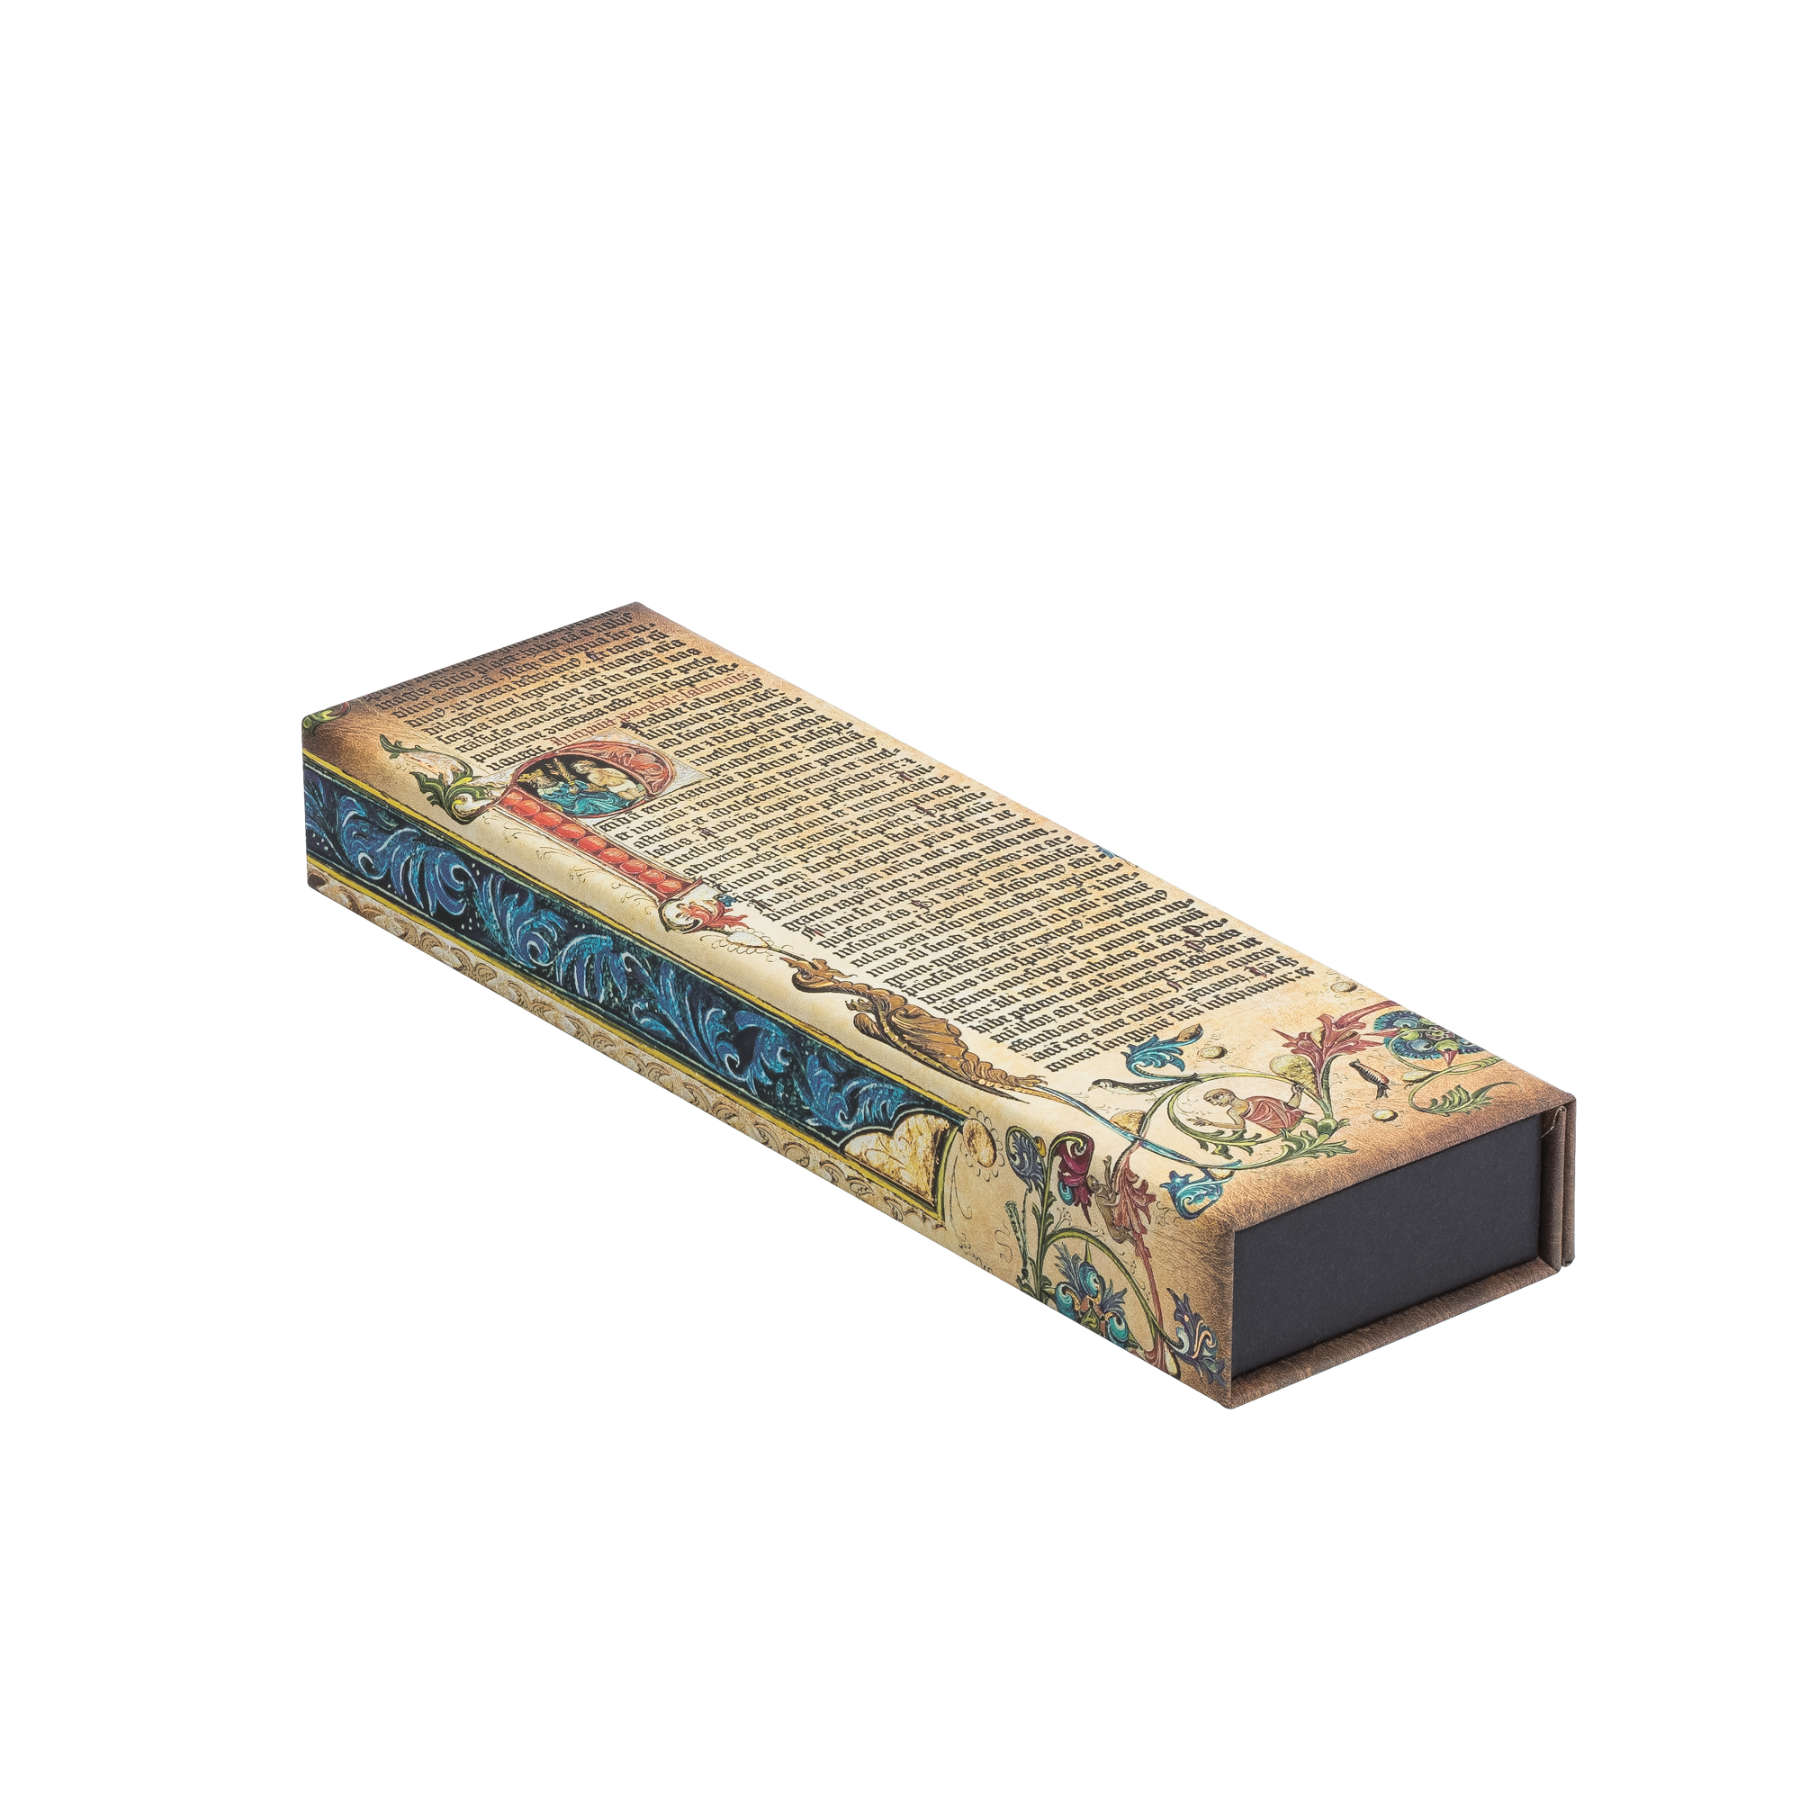 Paperblanks Gutenberg Bible, Parabole Pencil Case